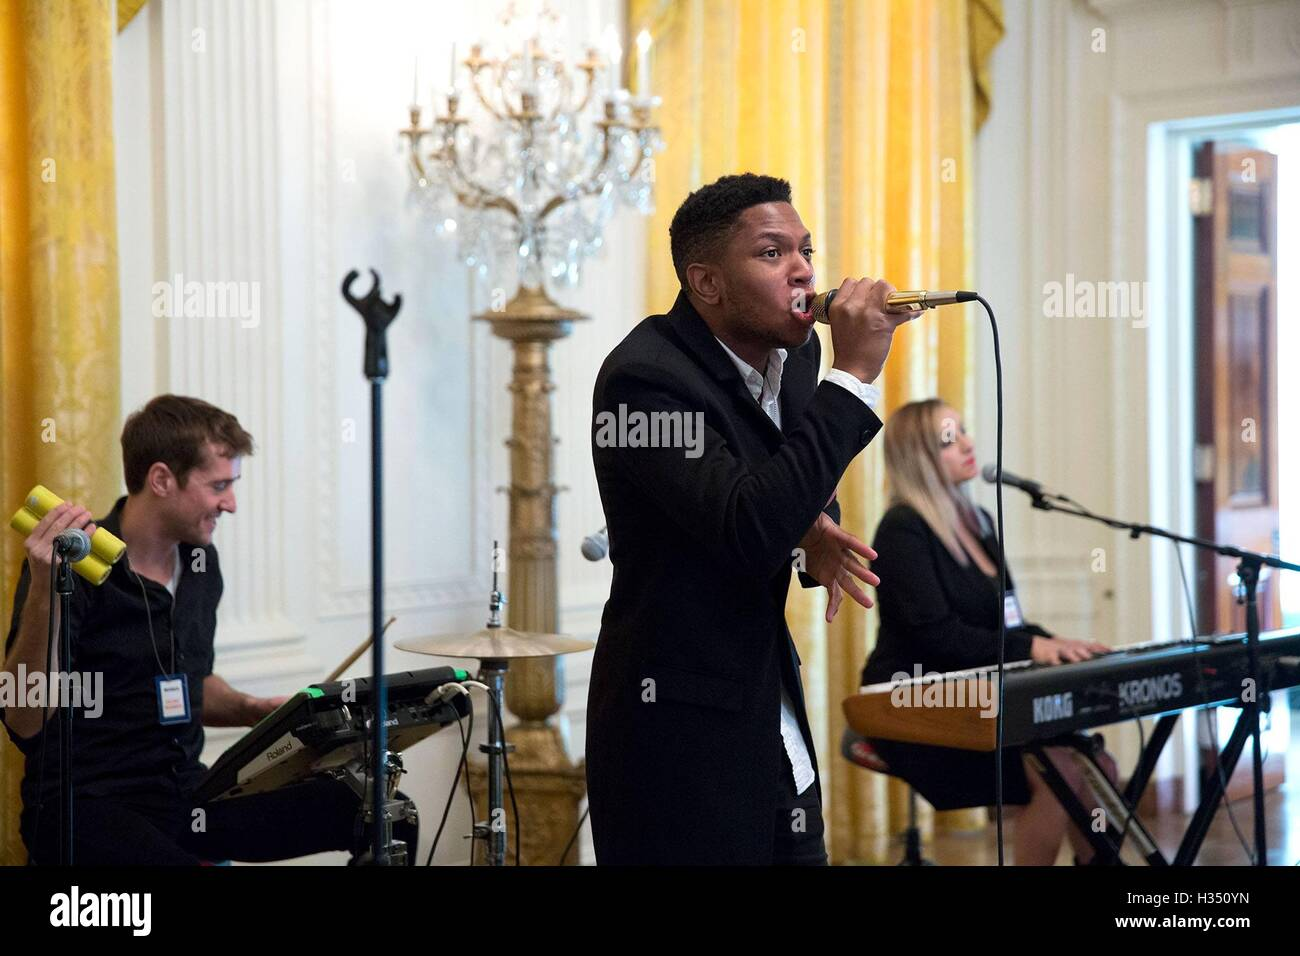 Washington DC, USA. 3rd October, 2016. Gallant performs during the South by South Lawn festival in the East Room - Stock Image